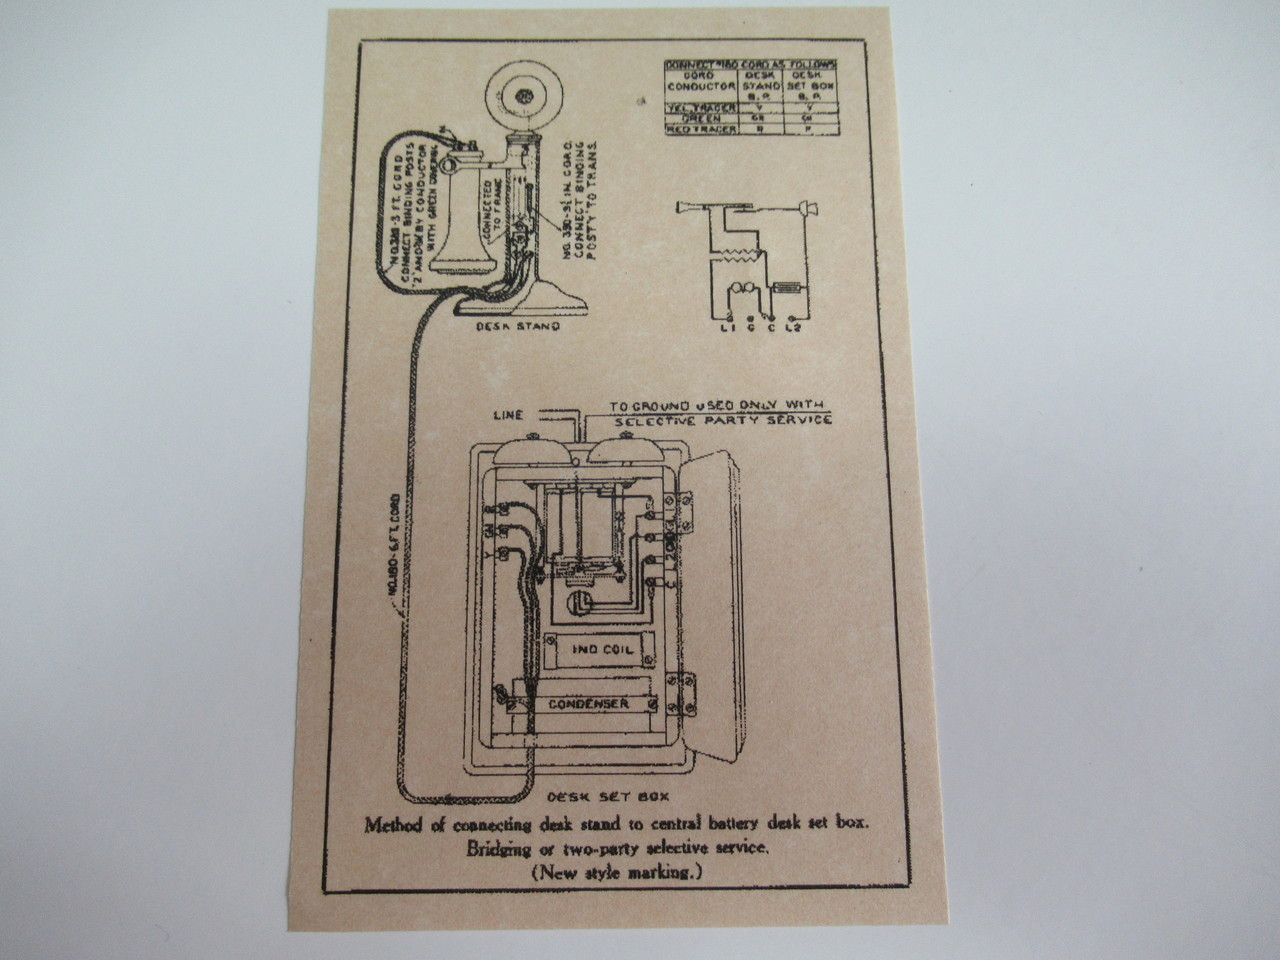 Old Western Electric Telephone Wiring Diagrams on old telephone diagram, western electric telephone manuals, western electric wall phone, copper network diagram, western electric telephone parts, western electric payphone schematic, western electric telephone transformer, western electric network diagram, western electric telephones history, western electric 202, western electric antique telephones, western electric telephones wall mount, western plow solenoid wiring, western electric telephone line, western electric telephone repair, natural gas meter parts diagram, western electric telephone identification, phone diagram, utility pole diagram,